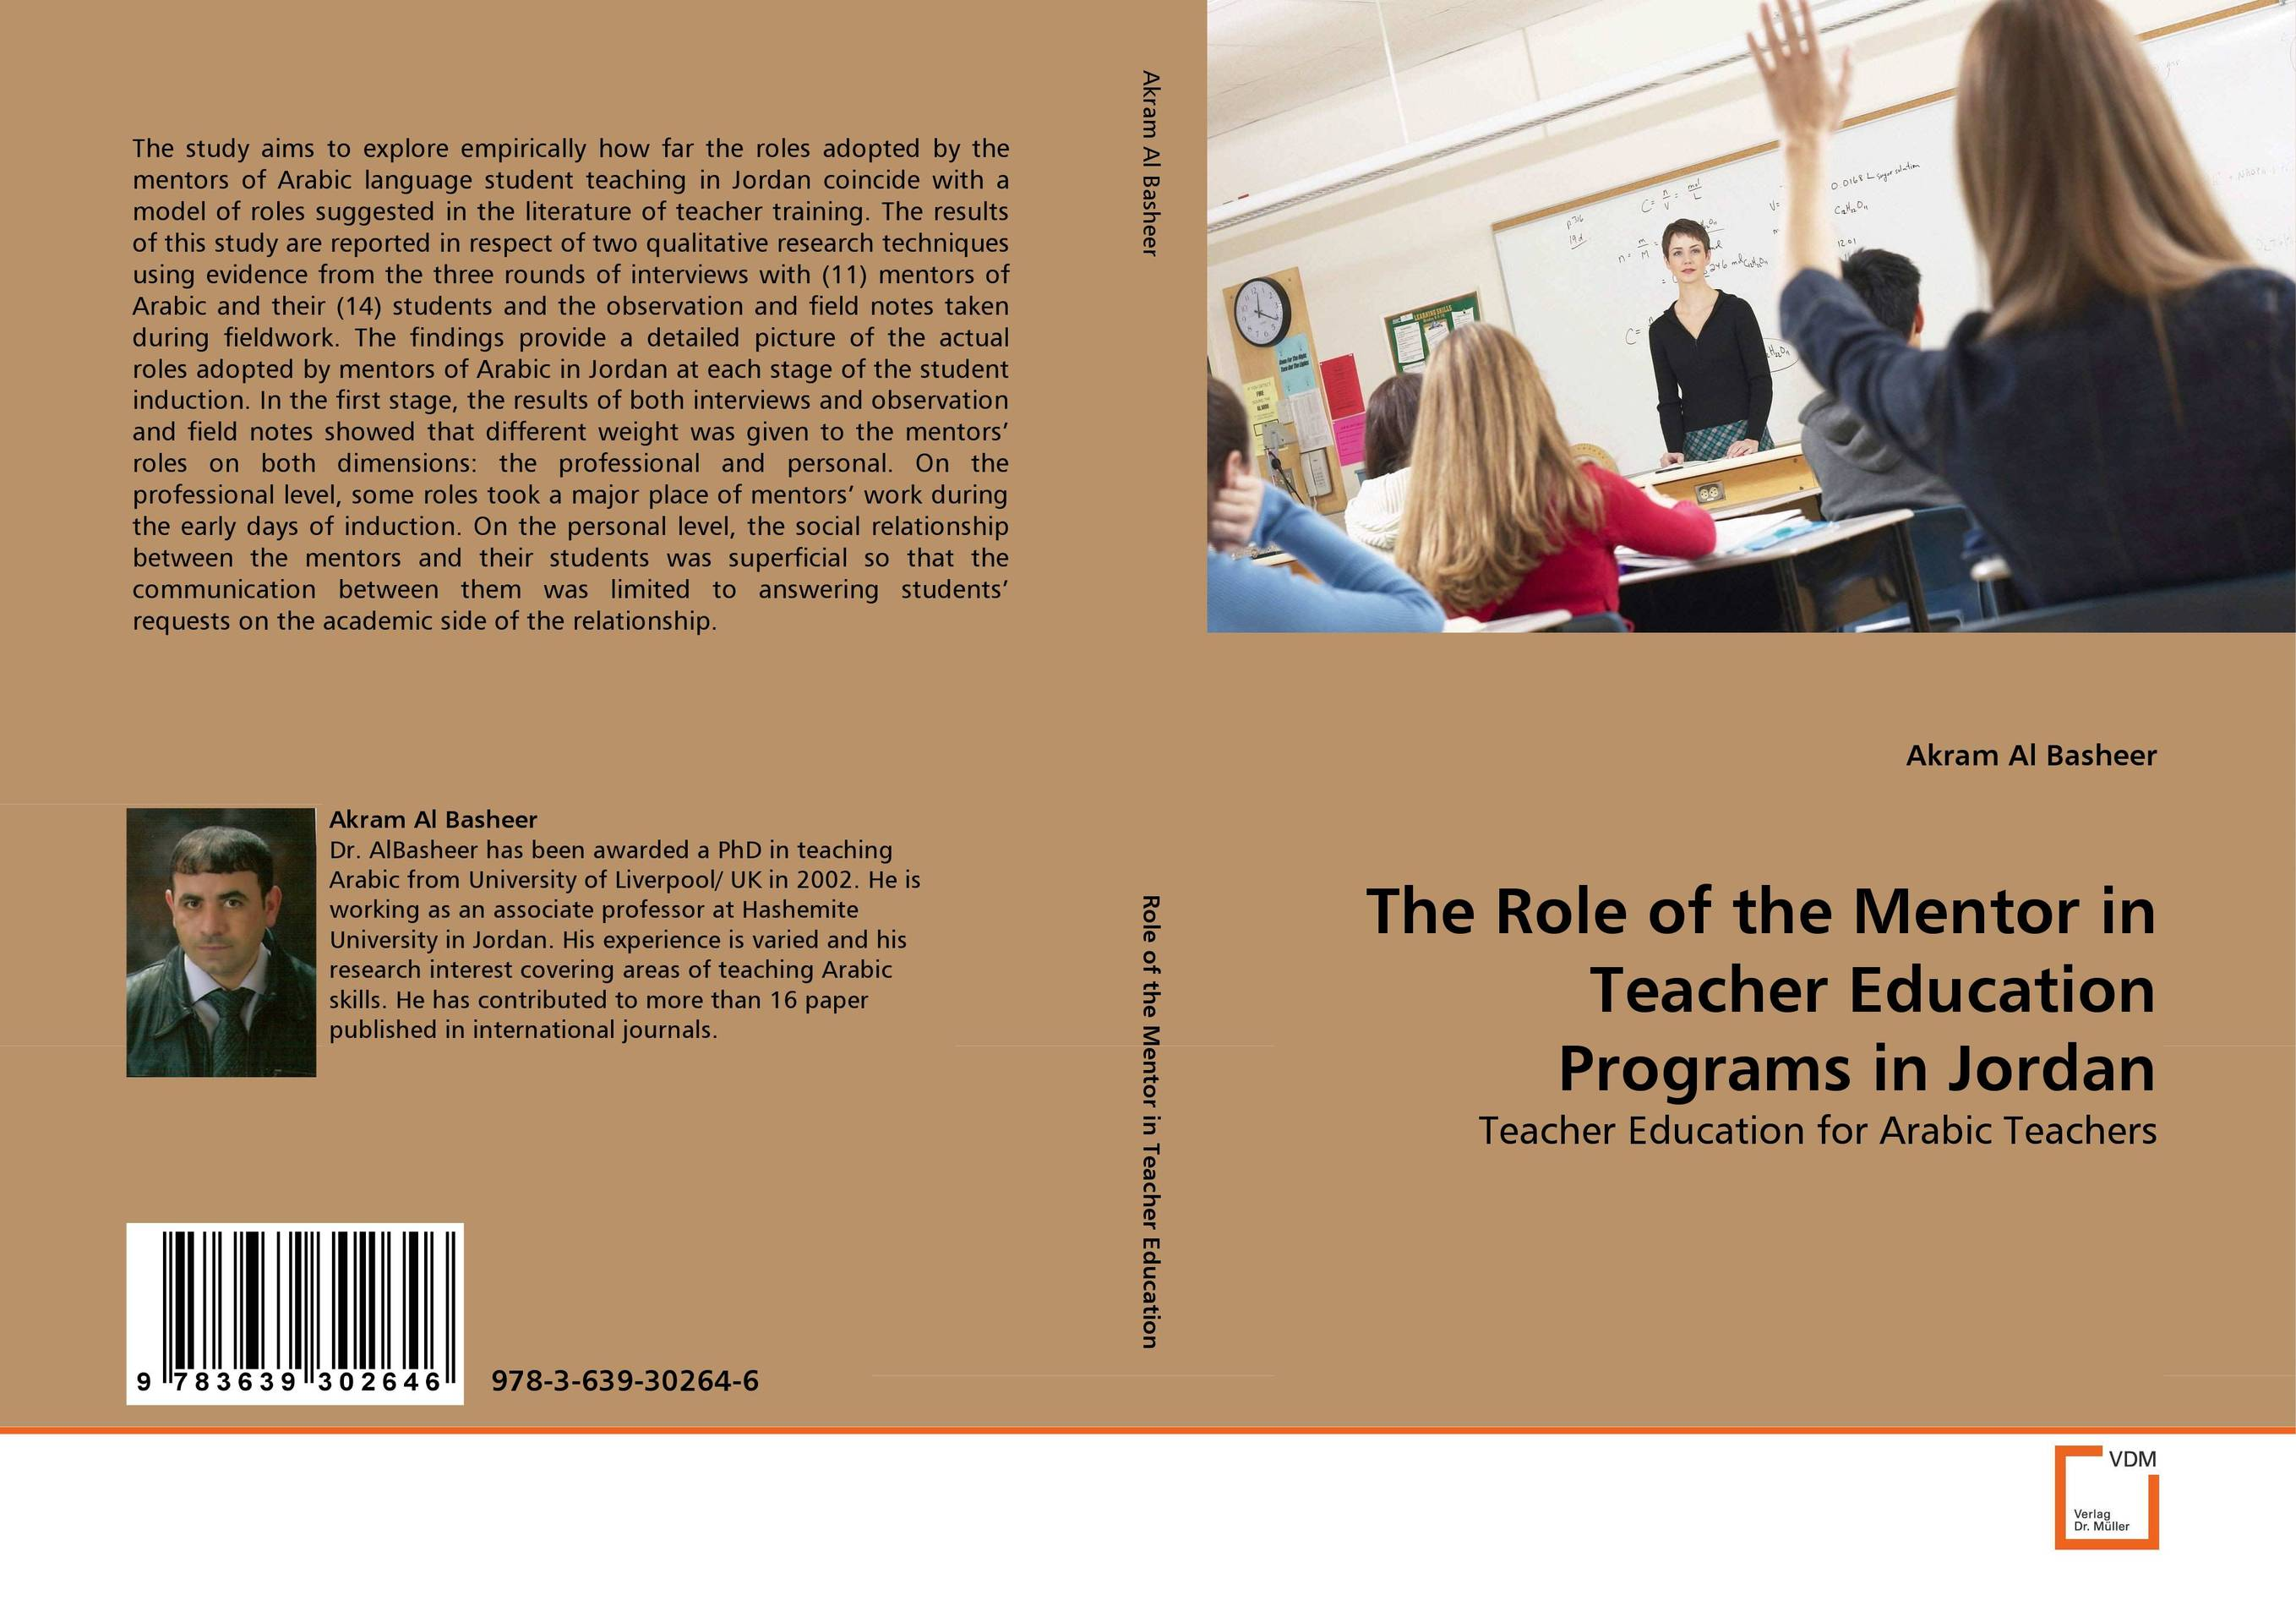 The Role of the Mentor in Teacher Education Programs in Jordan